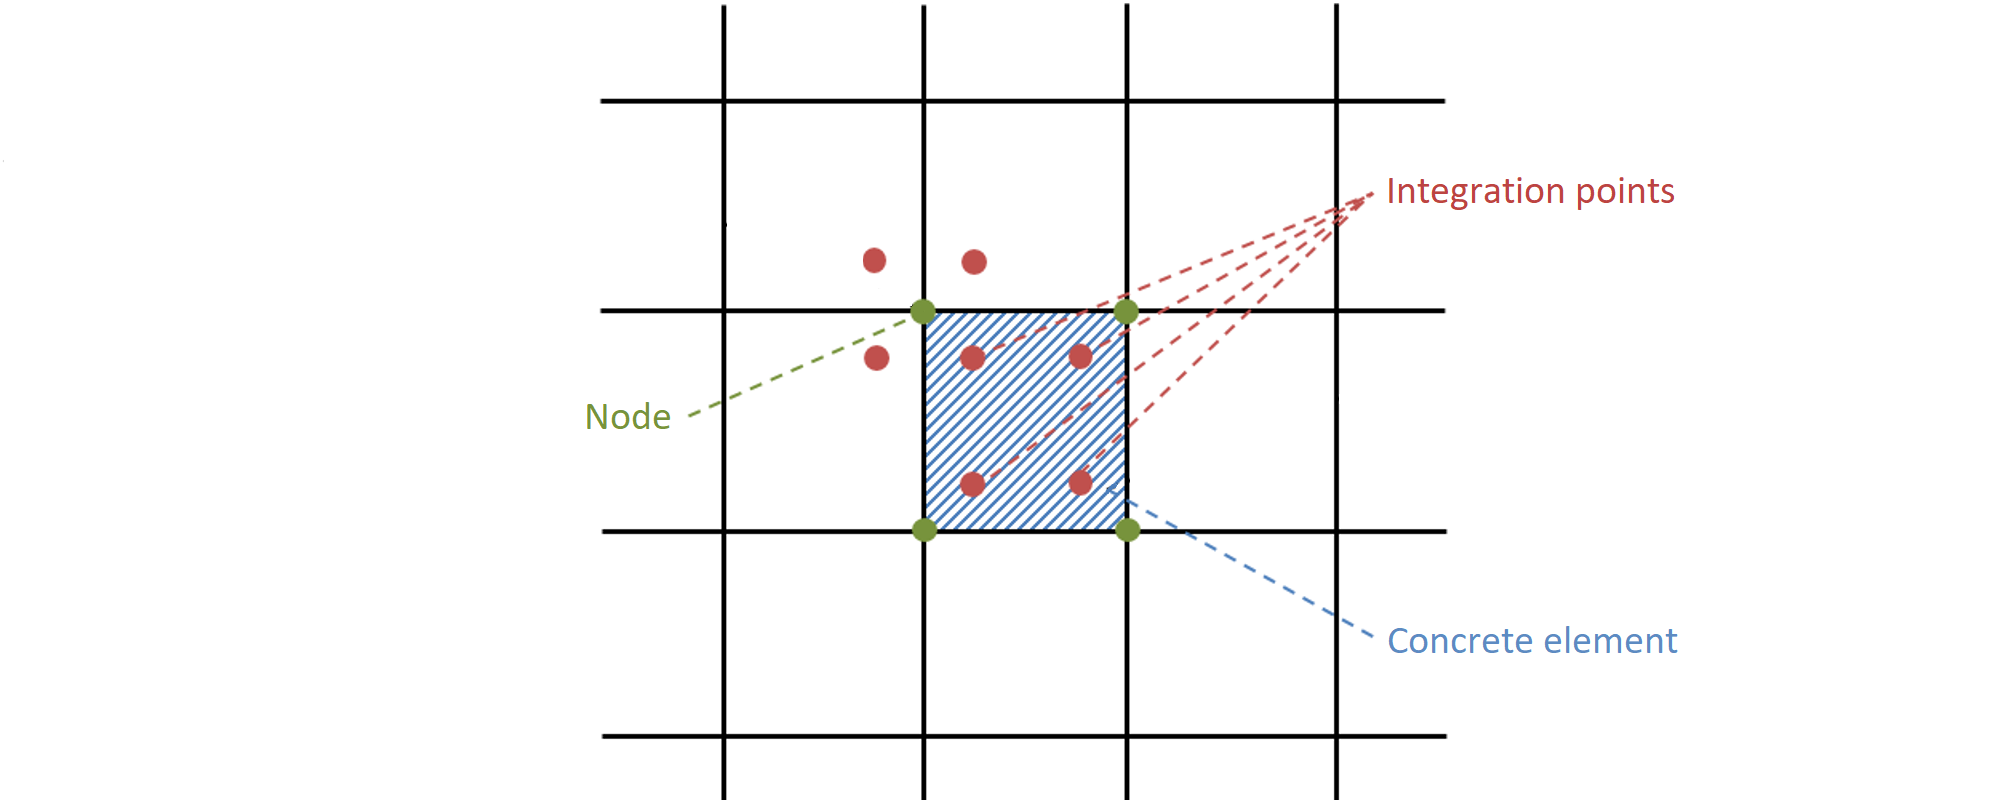 Fig. 22	 Concrete finite element with integration points and nodes: presentation of the results for concrete in nodes and in finite elements.